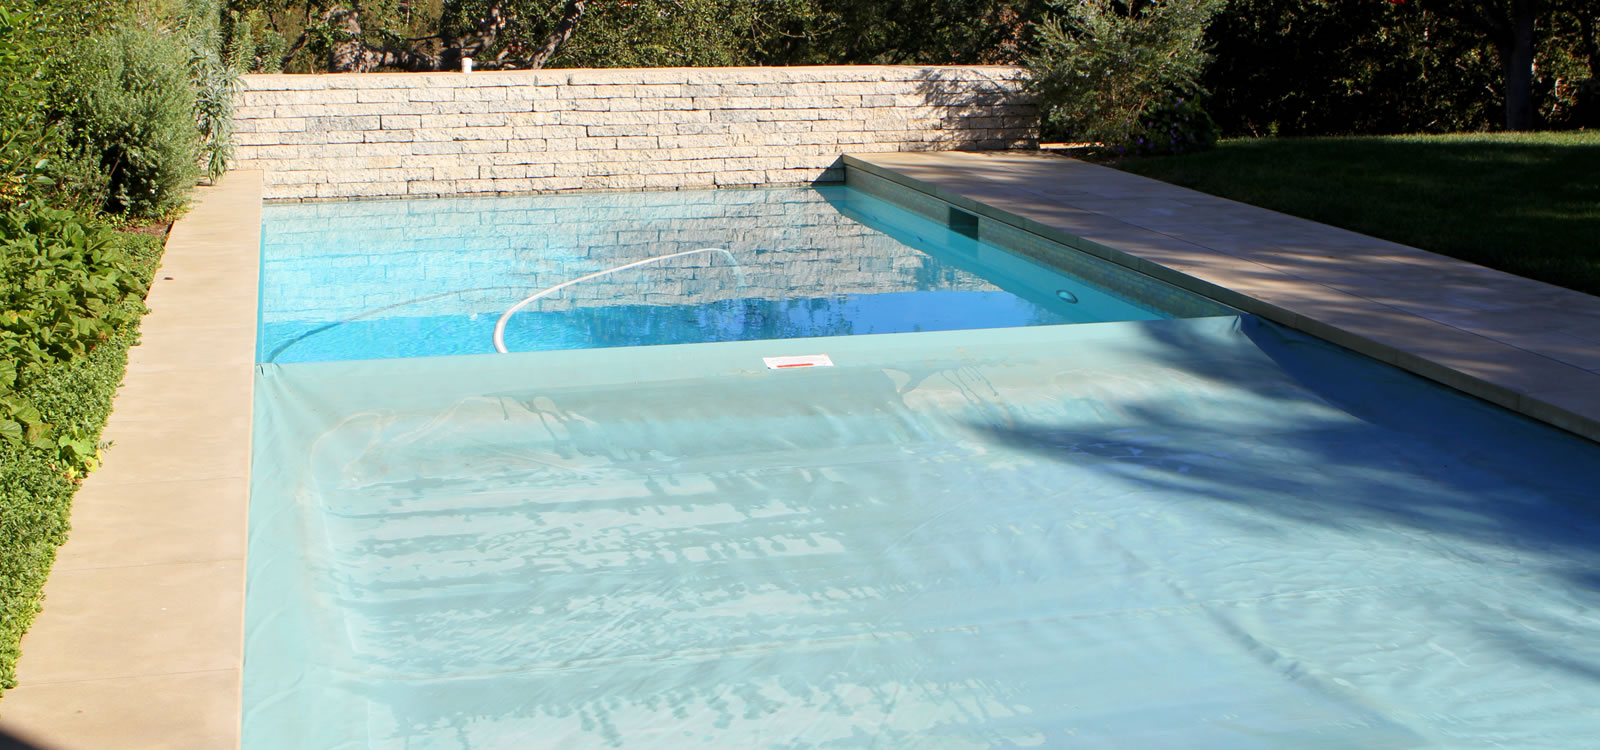 Design Pool And Spa jbi custom pool spa landscape hardscape Los Angeles Pool Spa Design With Bbq Island And Fire Feature